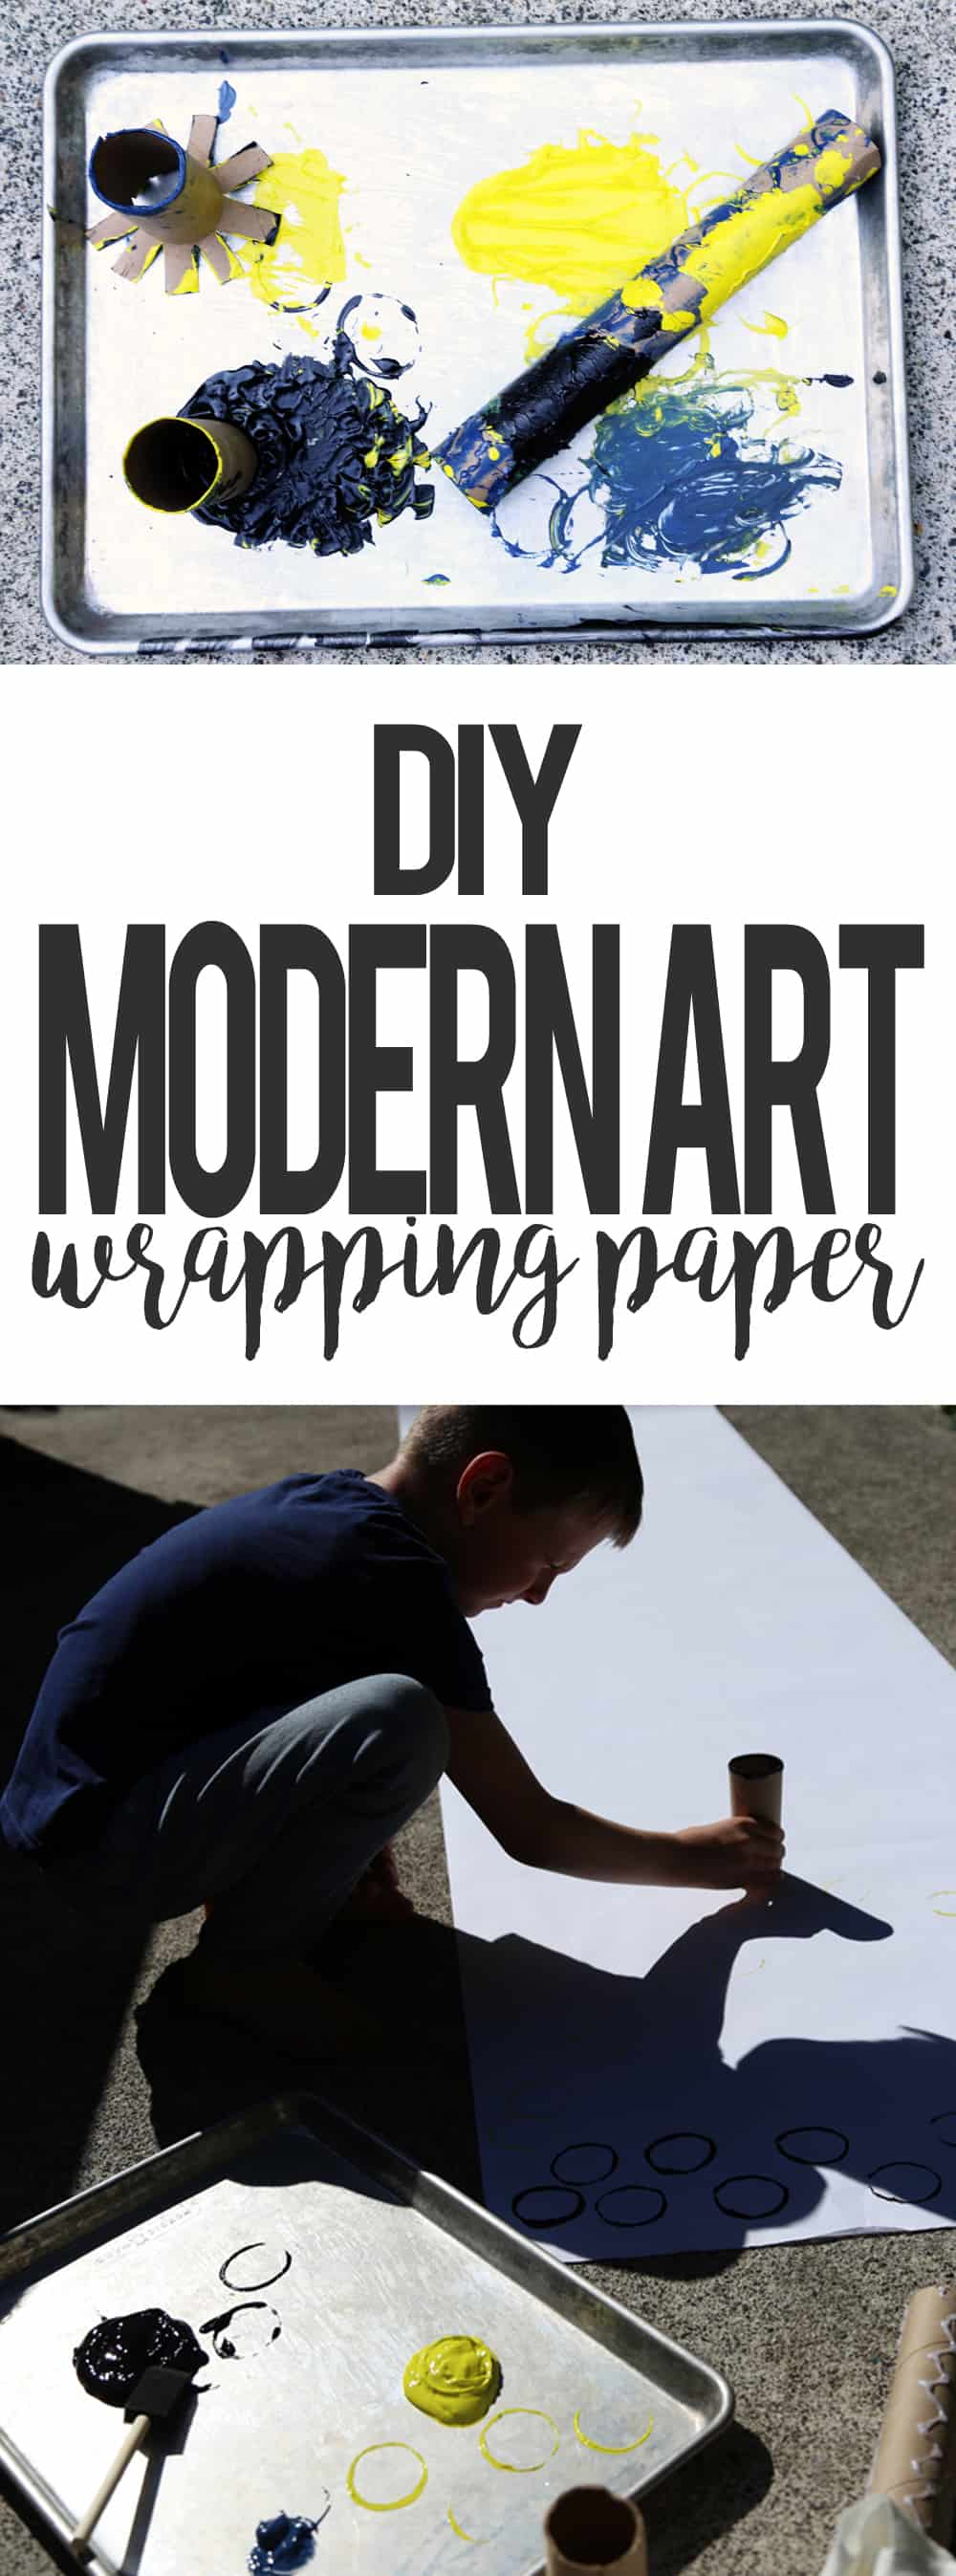 Kid Crafted Modern Art Wrapping Paper #BoxTopsHero #ad